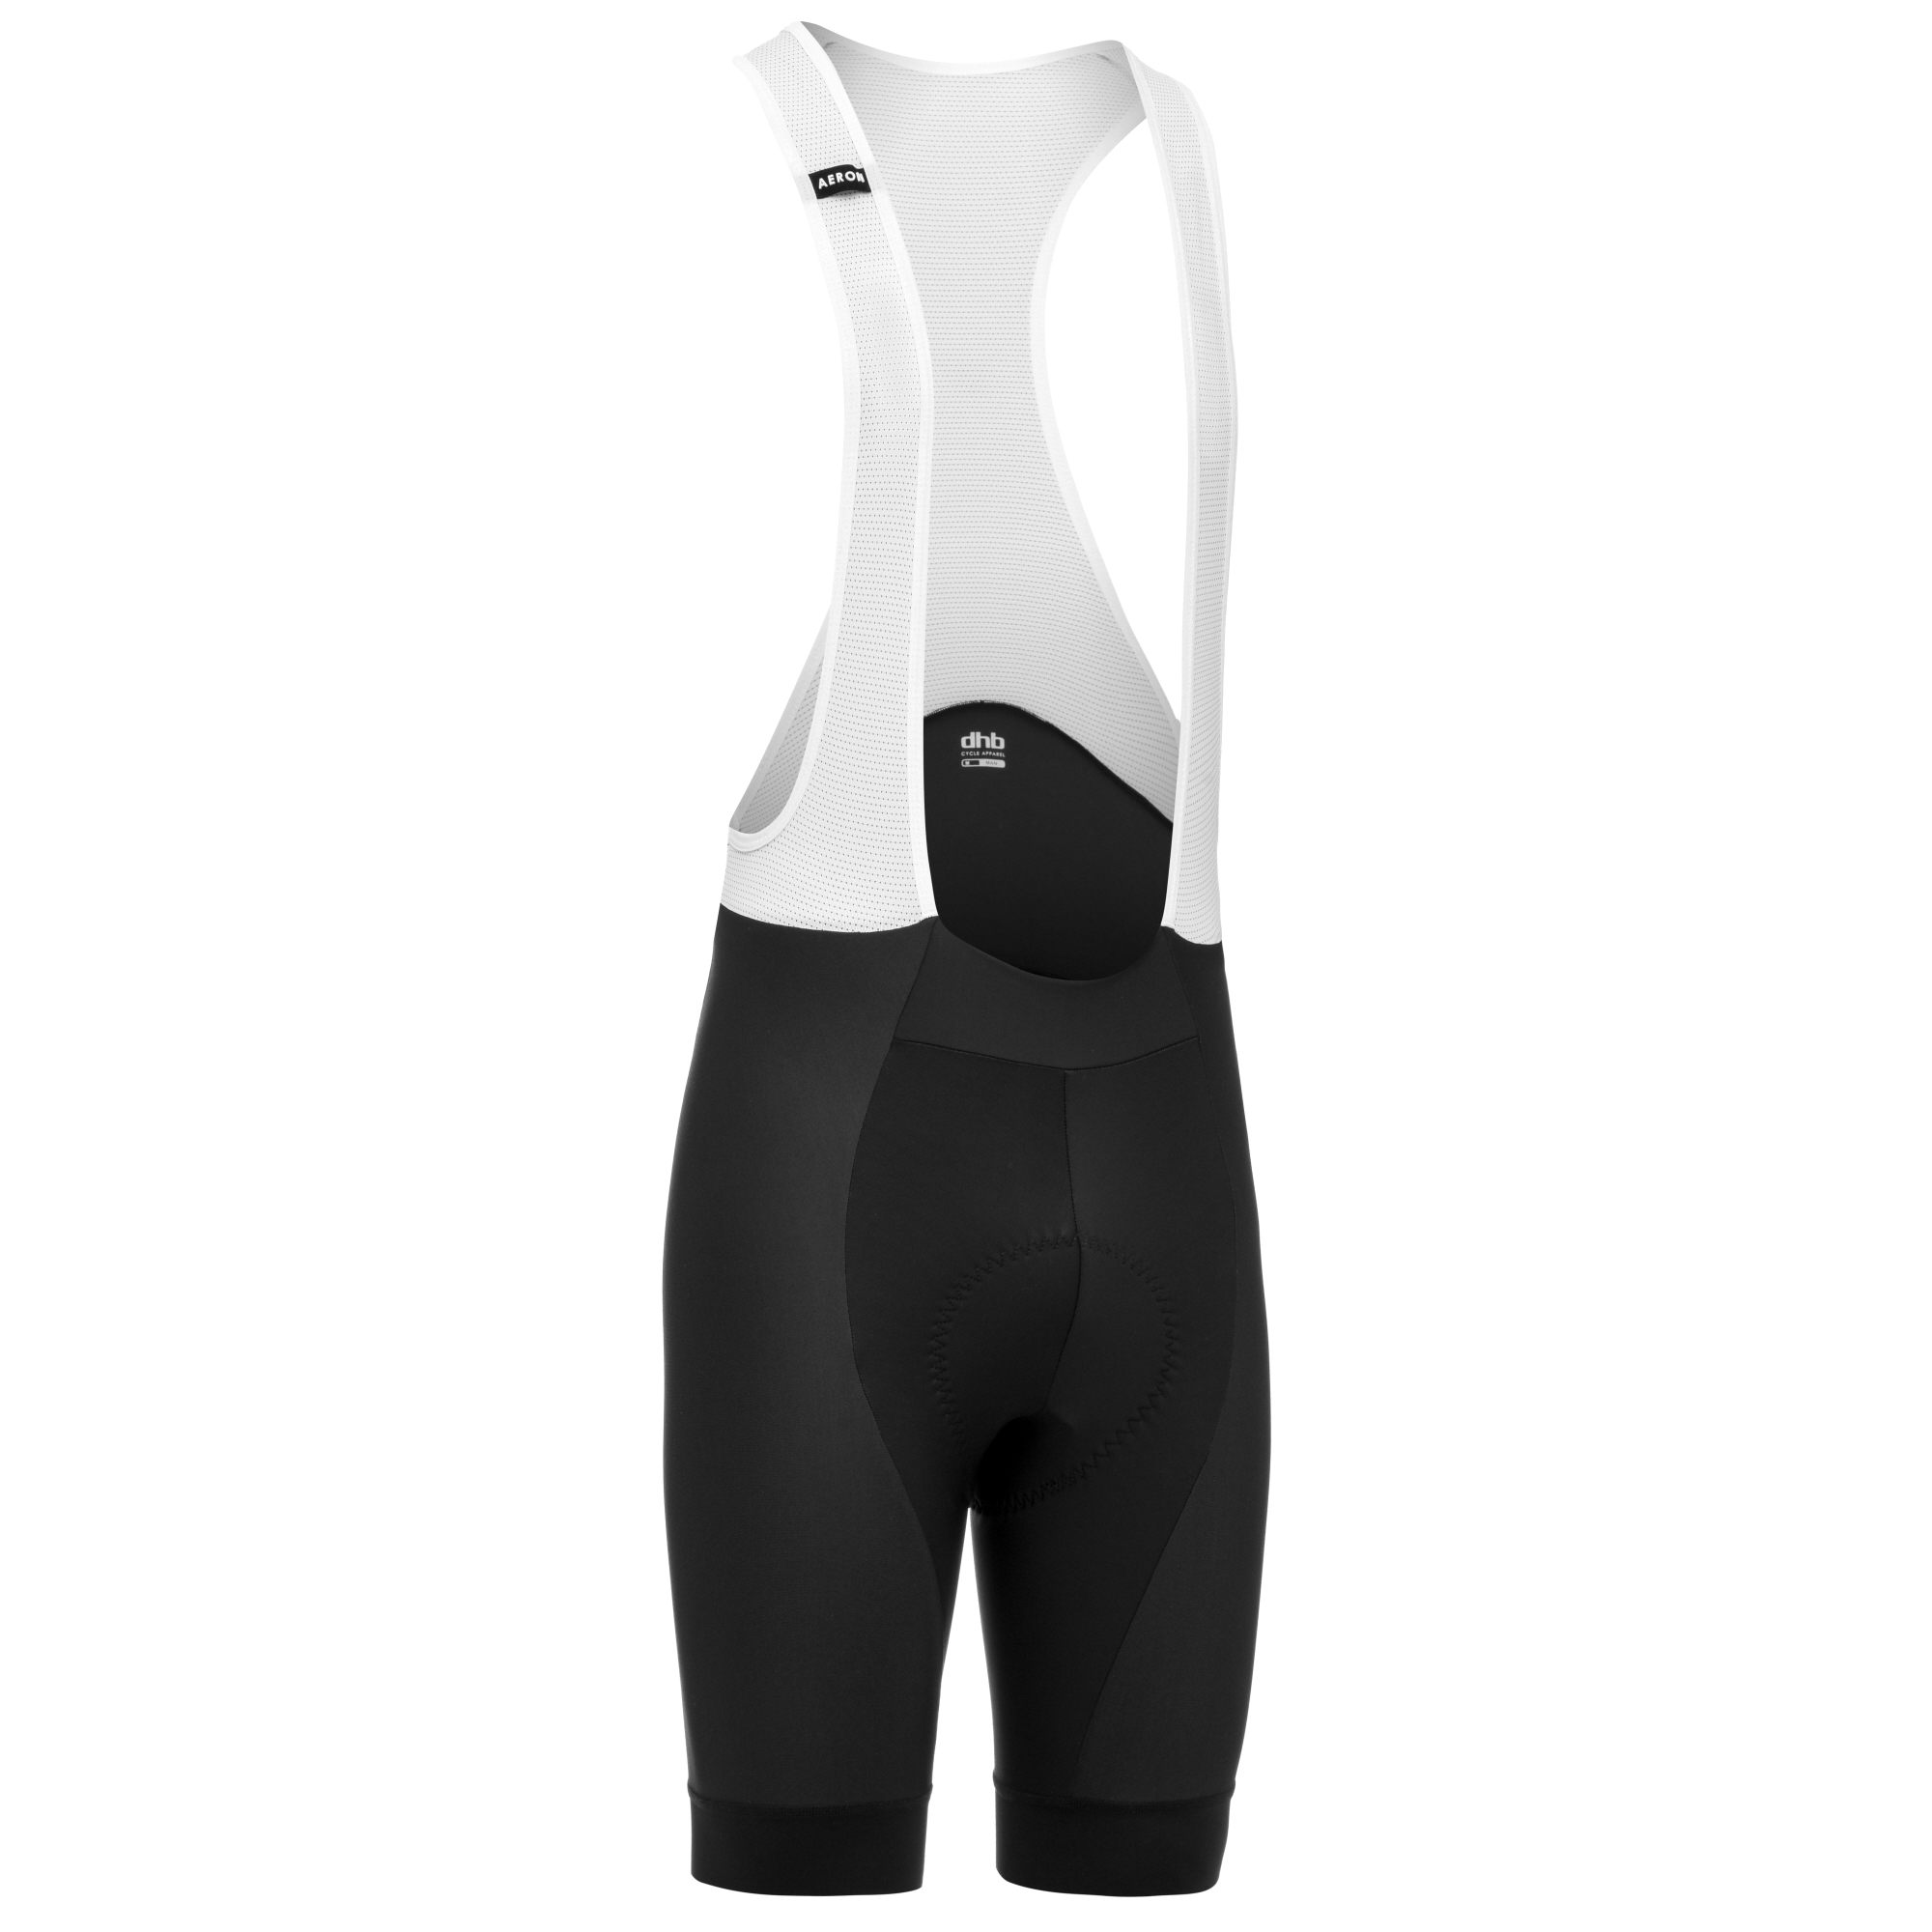 dhb Aeron Equinox Bib Shorts | Trousers